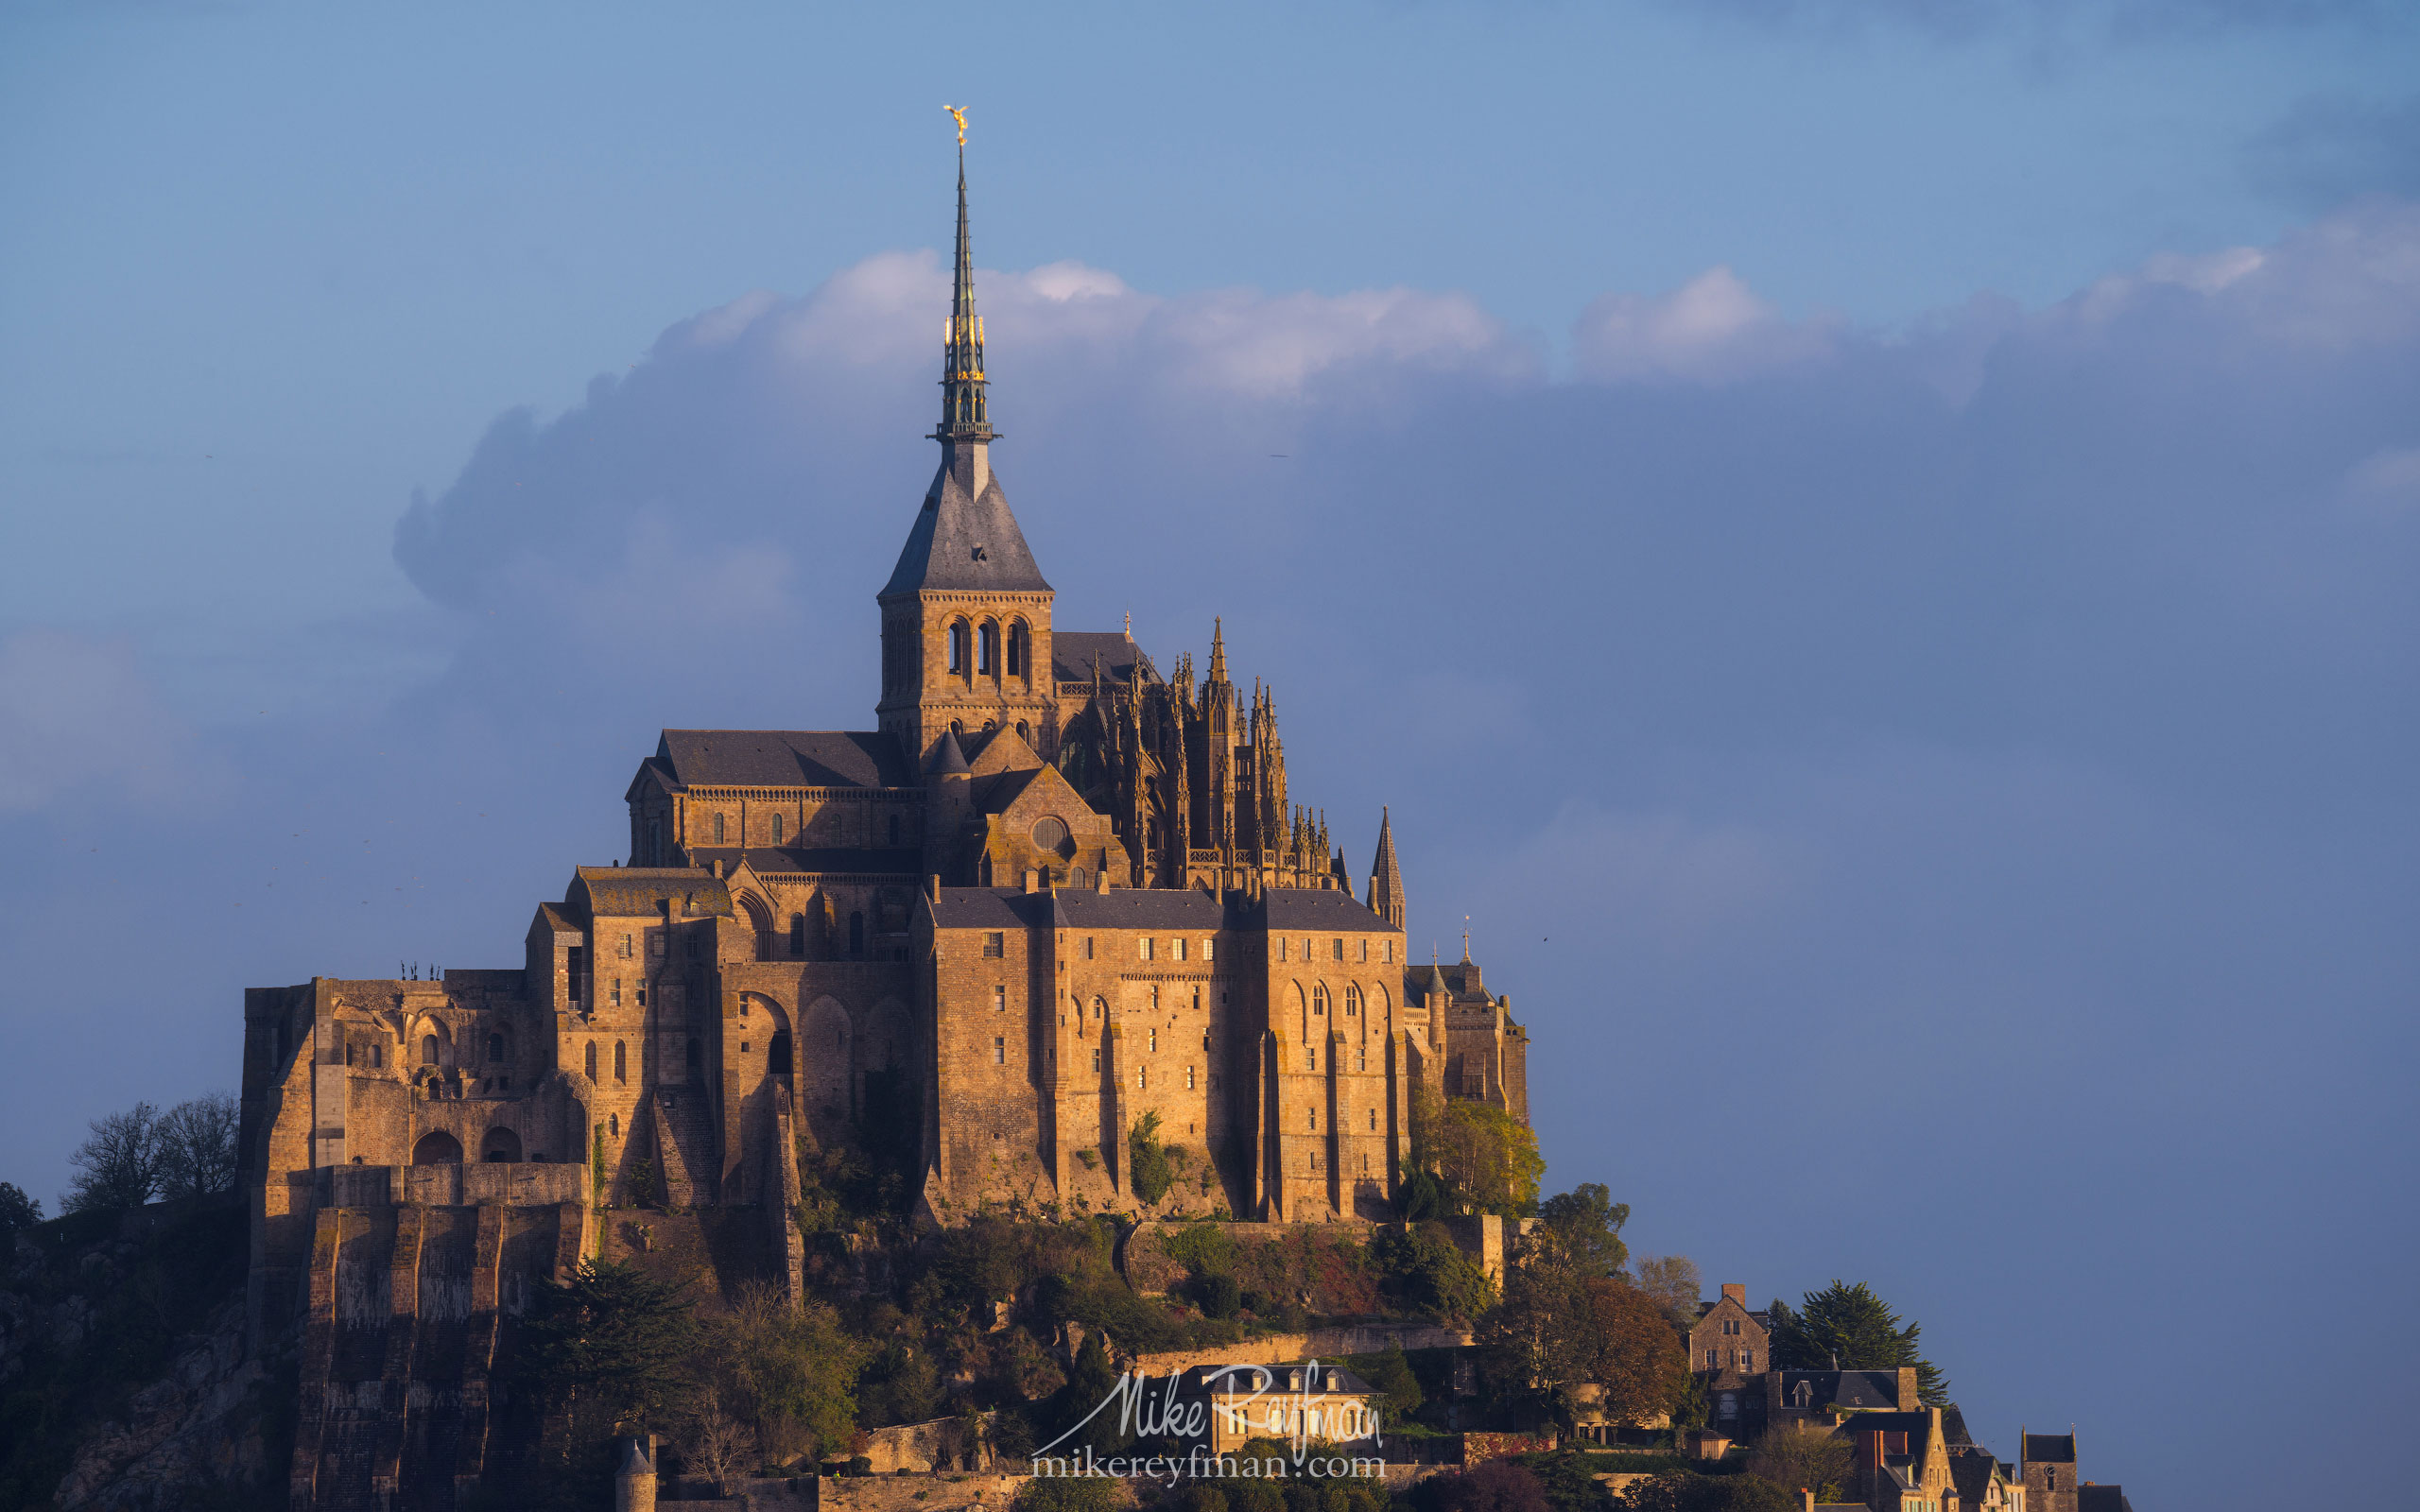 Le Mont-Saint-Michel Island and Benedictine Abbey. Normandy, France SM_MR50A1634 - Le Mont Saint Michel Island and Benedictine Abbey, Normandy, France - Mike Reyfman Photography